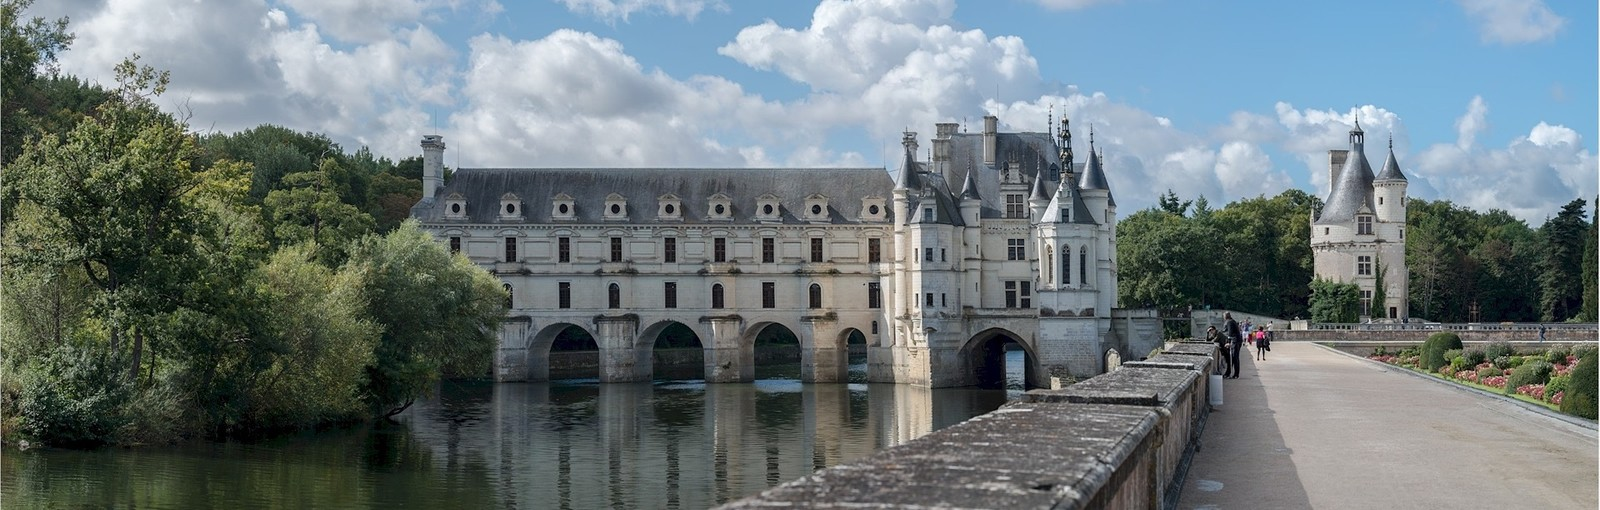 Tours Castles of the Loire valley - Normandy - Multi-regional - Multiday tours from Paris